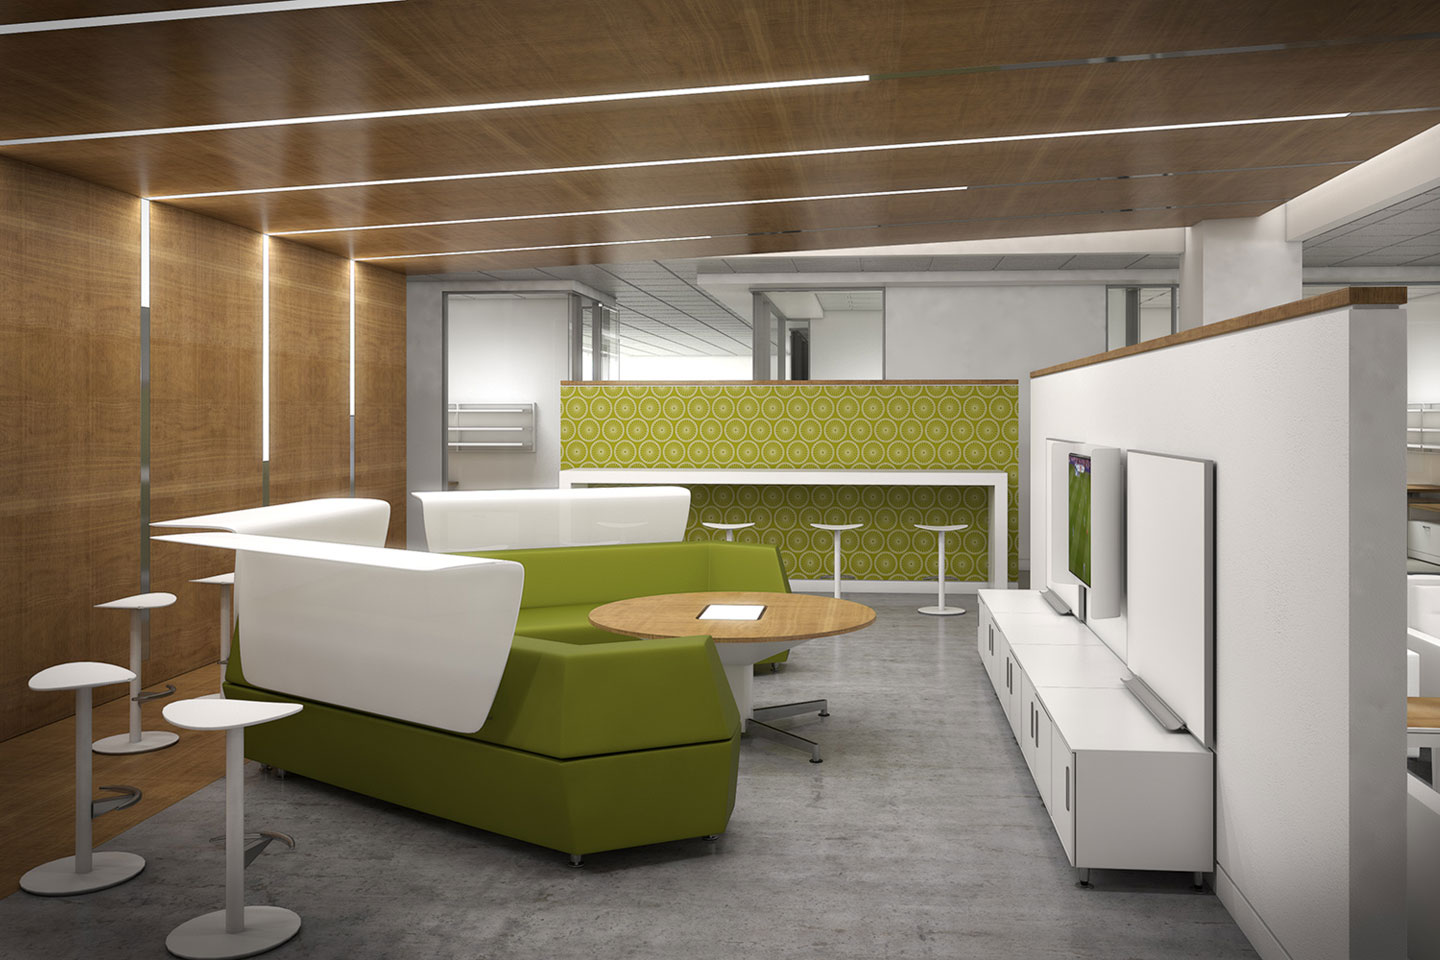 photo of the bupa office lounge area